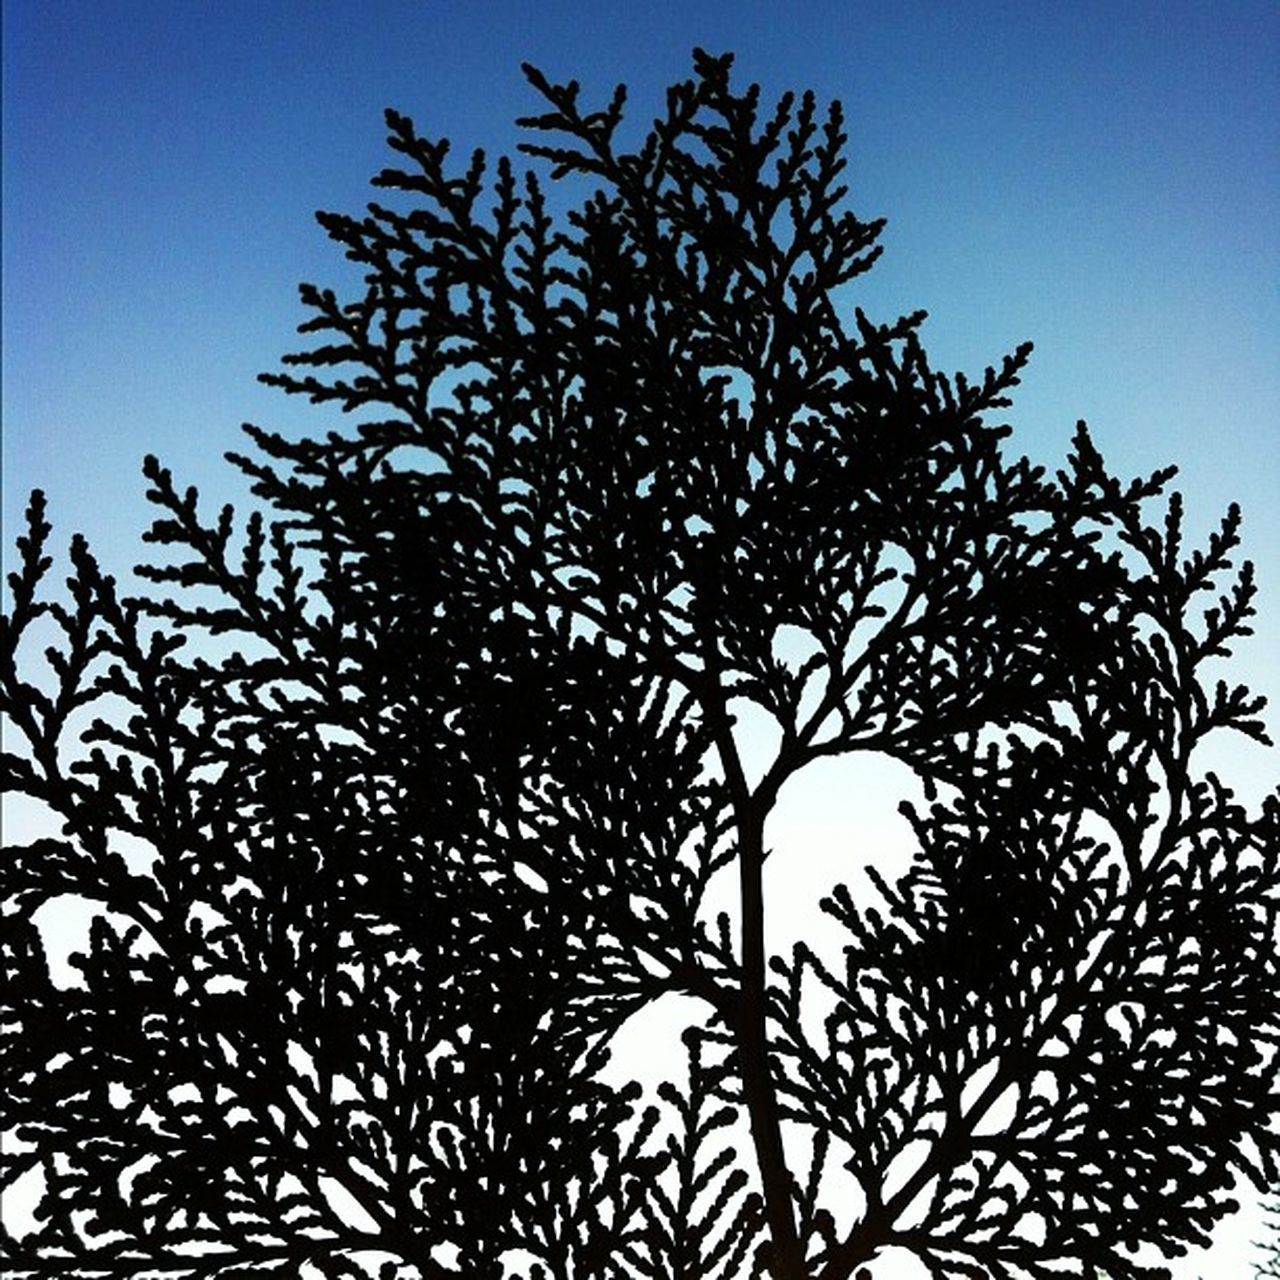 clear sky, silhouette, low angle view, no people, tree, growth, nature, outdoors, day, sky, beauty in nature